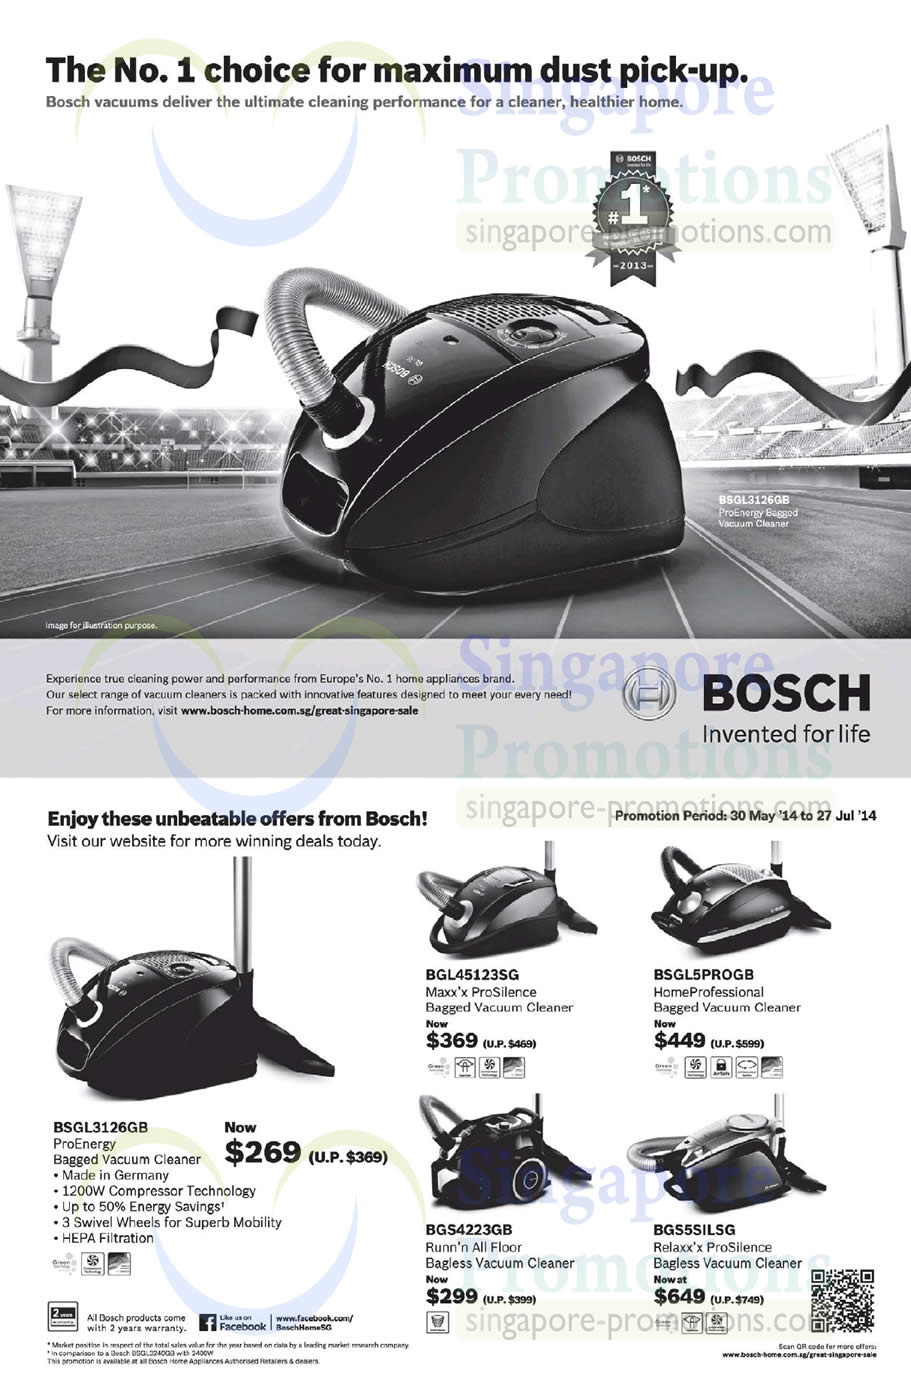 14 Jun Bosch Vacuum Cleaners ProEnergy, Maxx ProSilence, HomeProfessional,  Relaxx